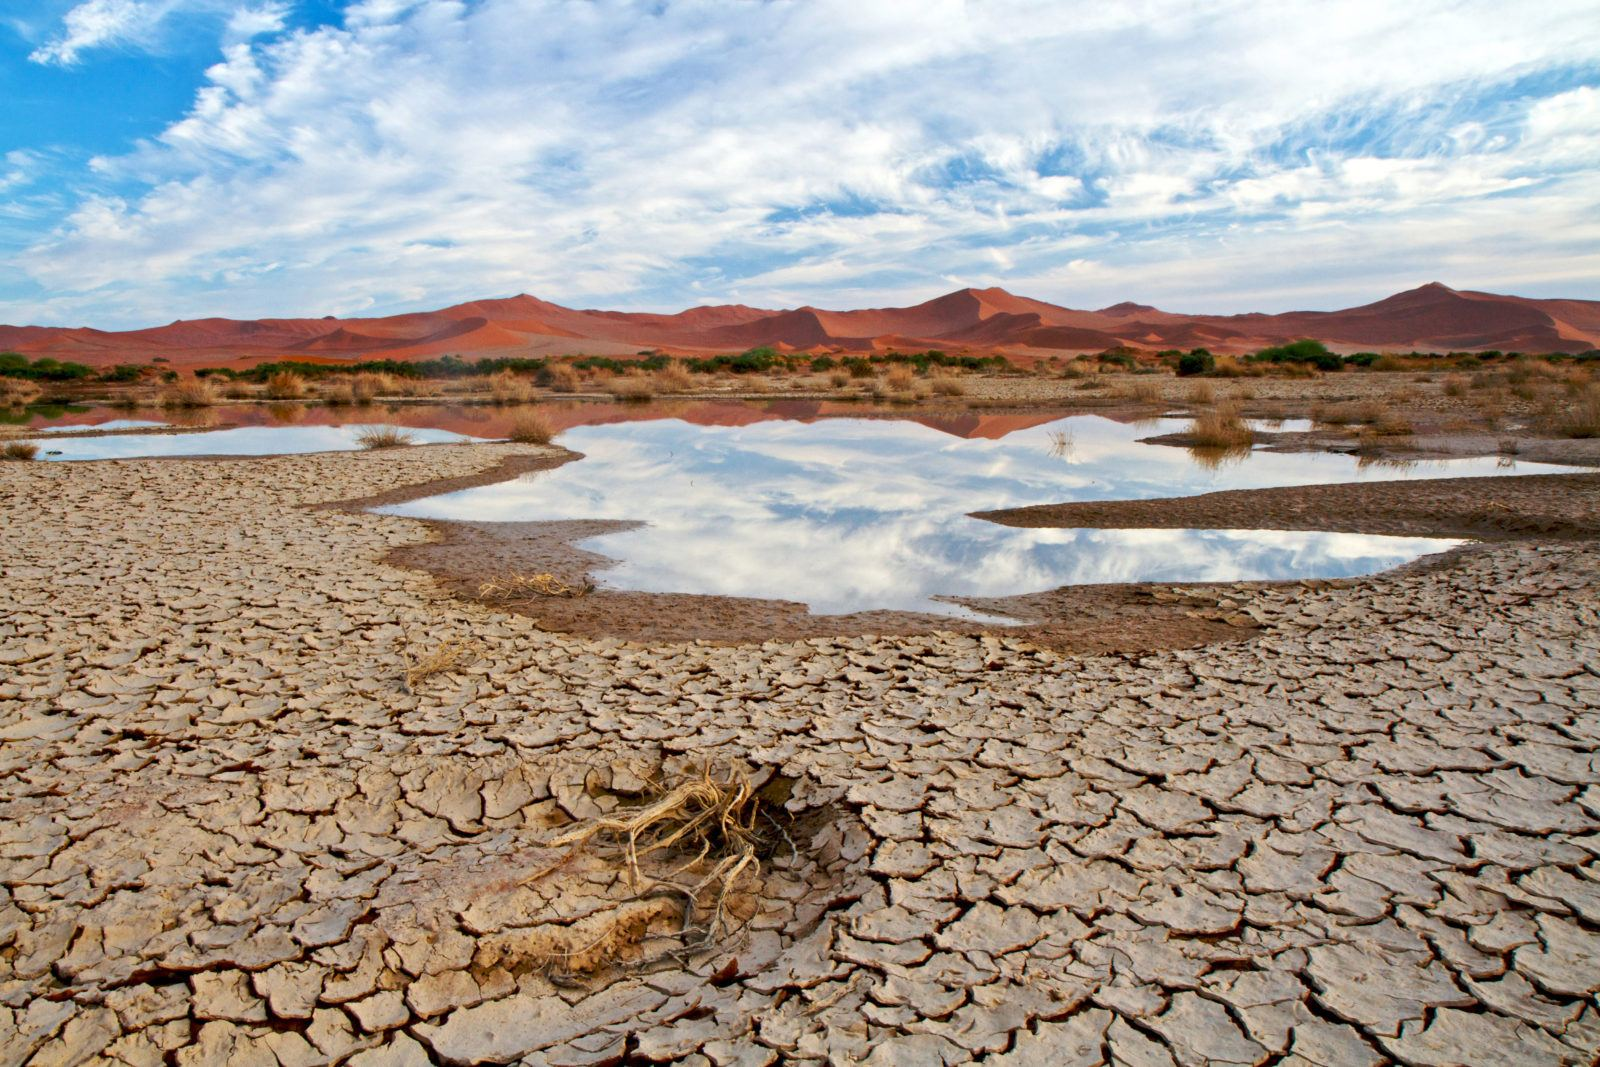 ucla conference to tackle water challenges in regions most impacted by climate change